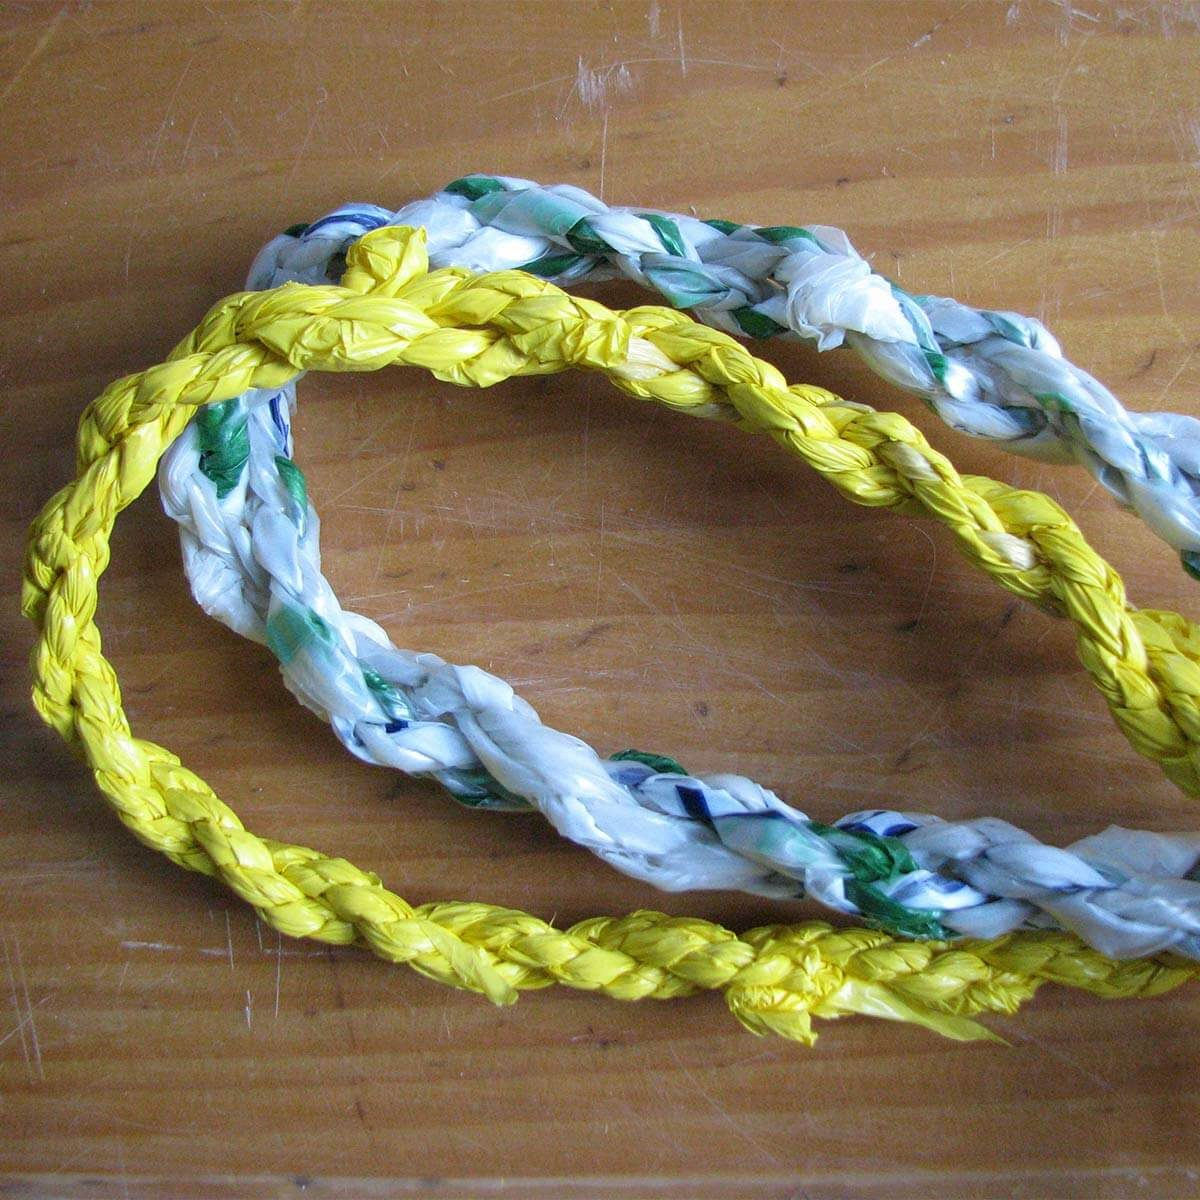 plastic bag rope